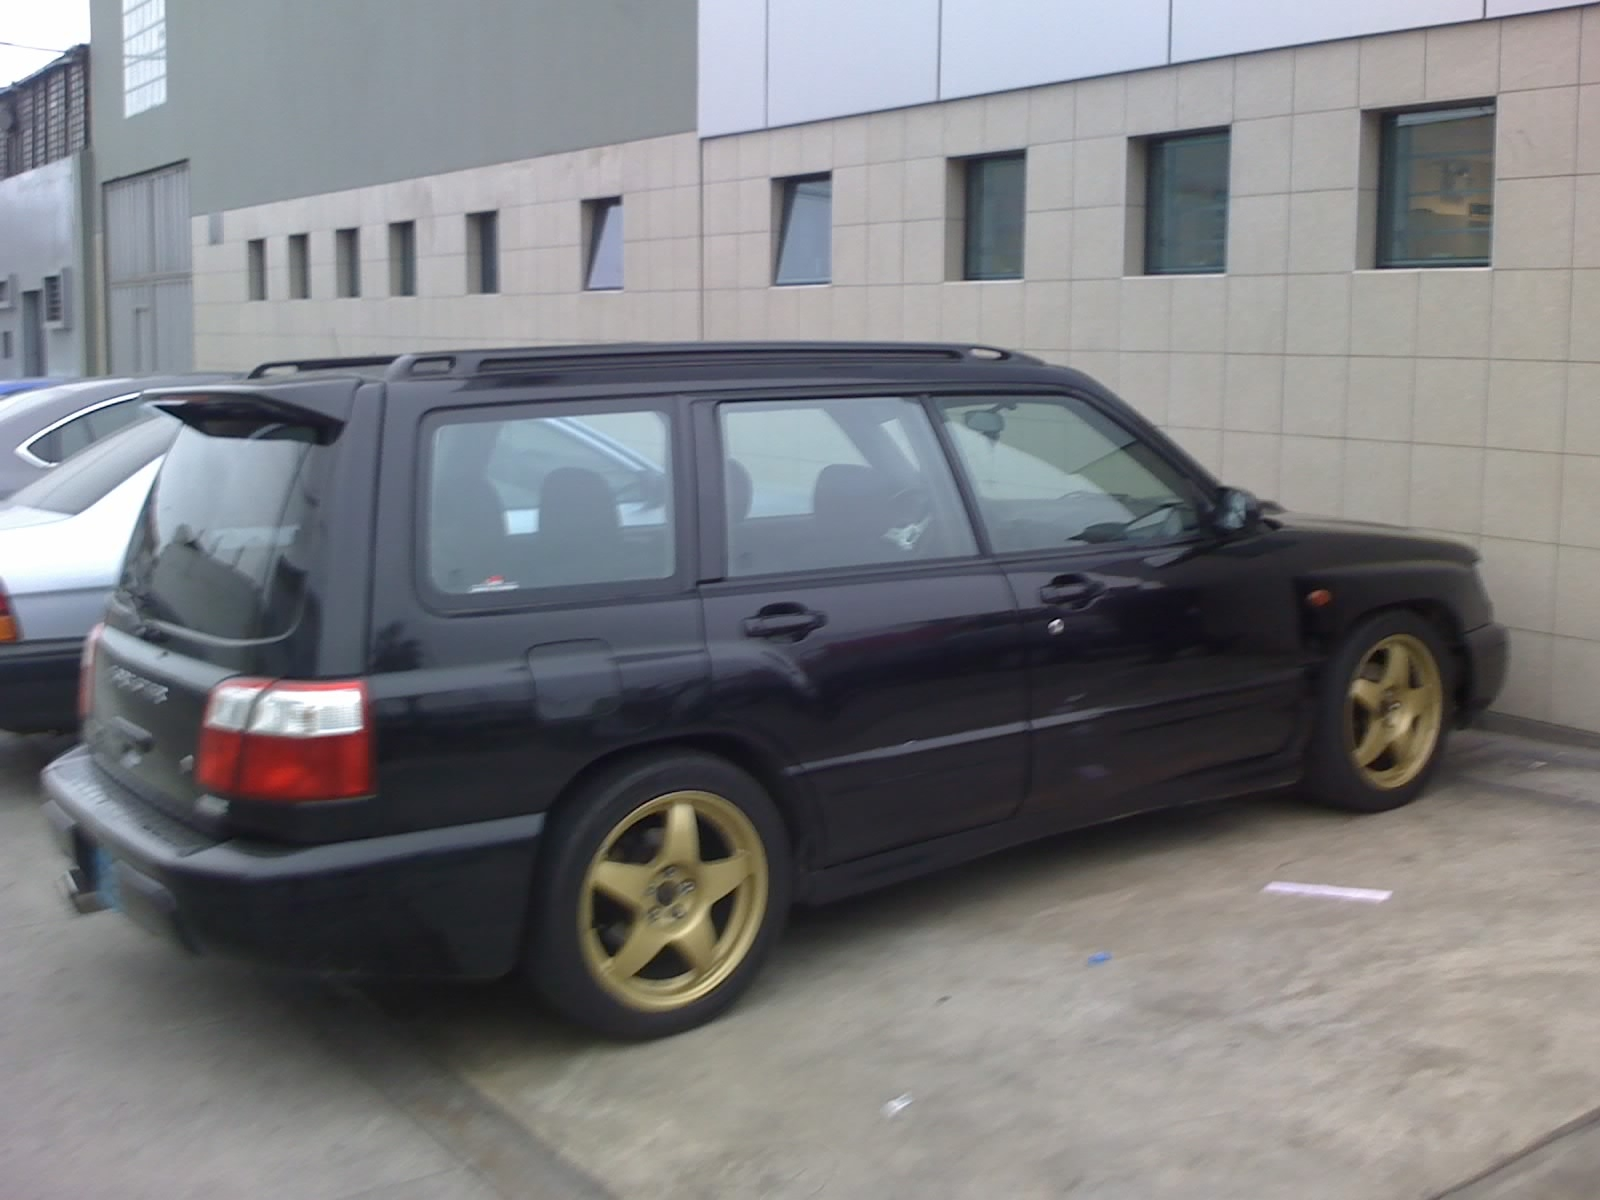 subaru forester stb picture 4 reviews news specs buy car subaru forester stb picture 4